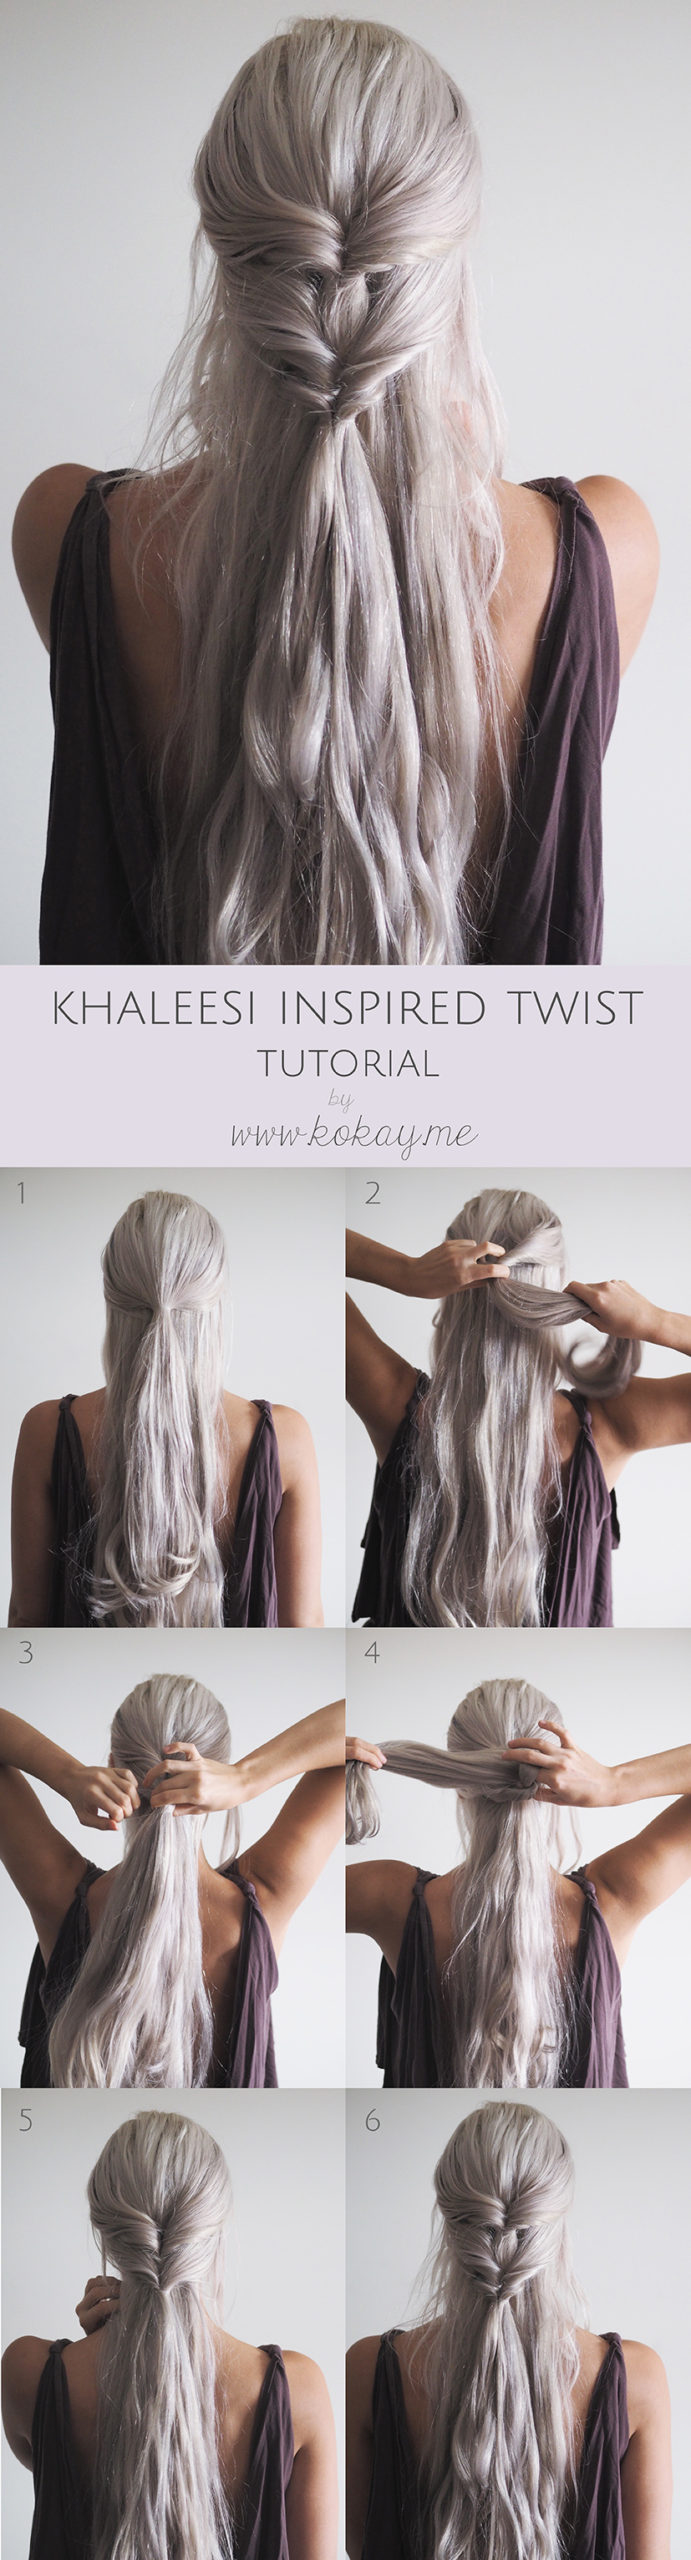 khaleesi twist hairstyle